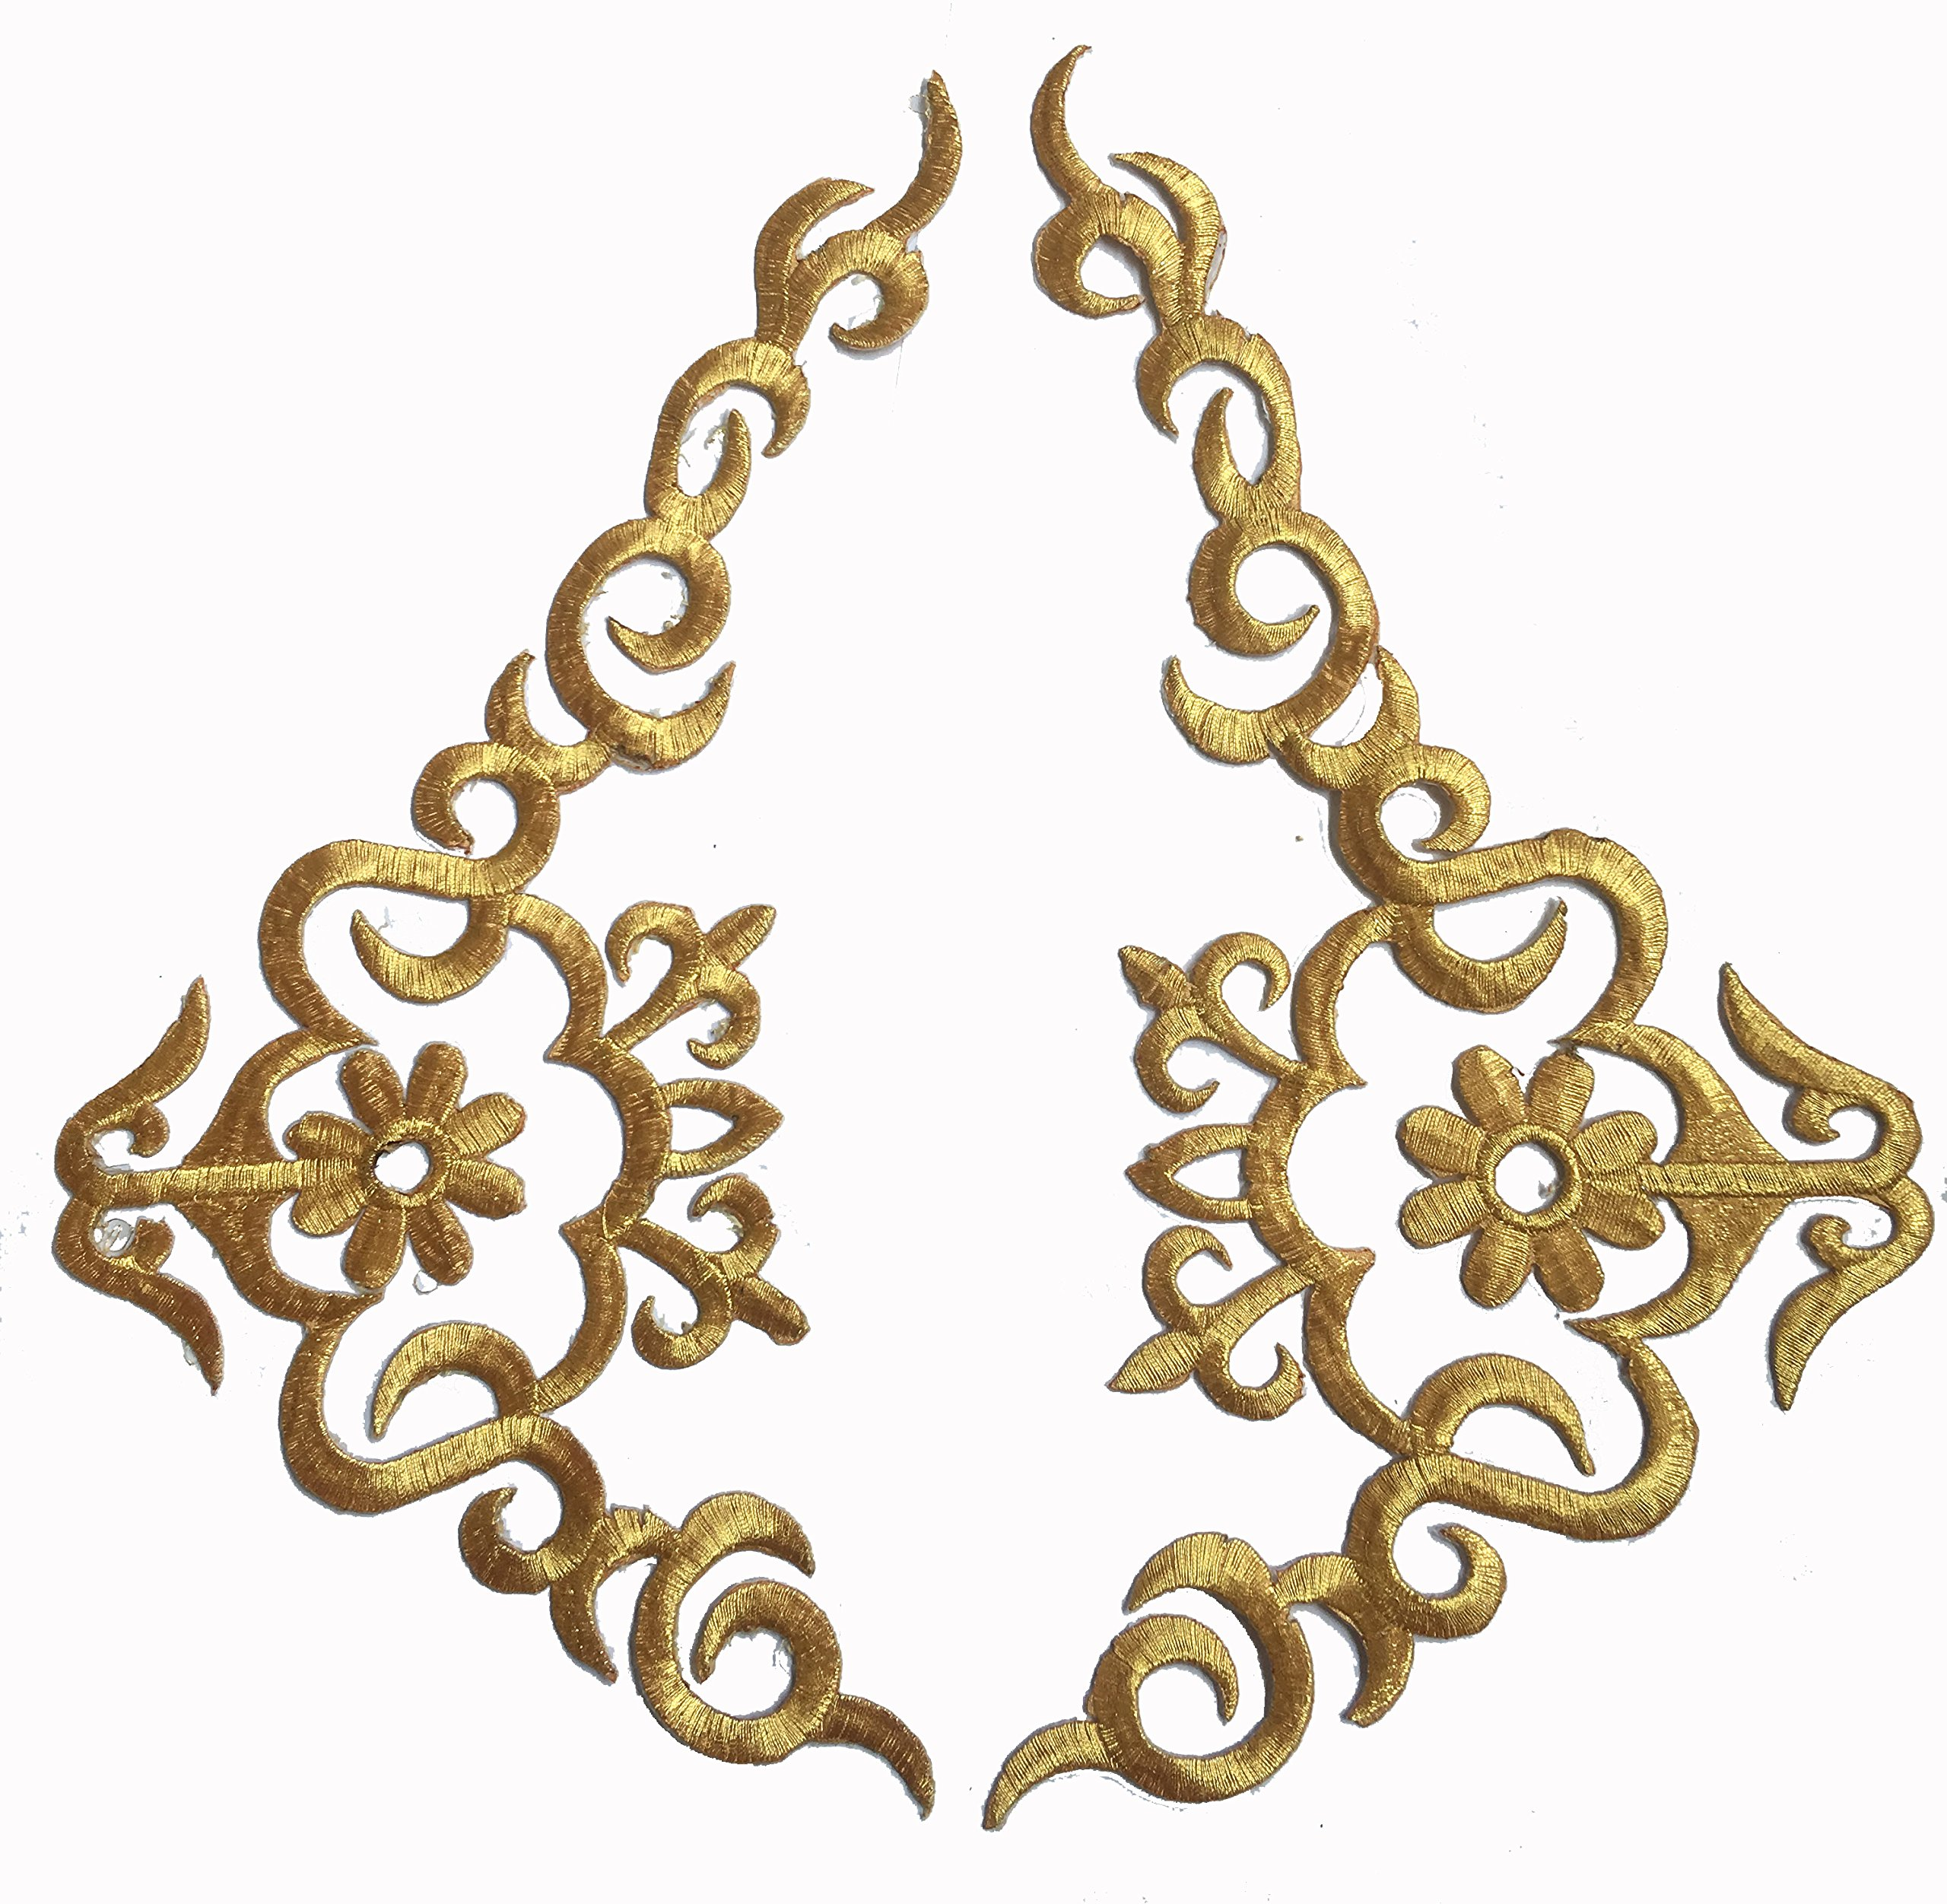 Two Hug Gold Flower Leaves Iron on Embroidered Appliques Patch Flower Motifs, Craft, Sewing, Embroidery Patches, Embroidered Lace Fabric Ribbon Trim Neckline Collar (Gold)